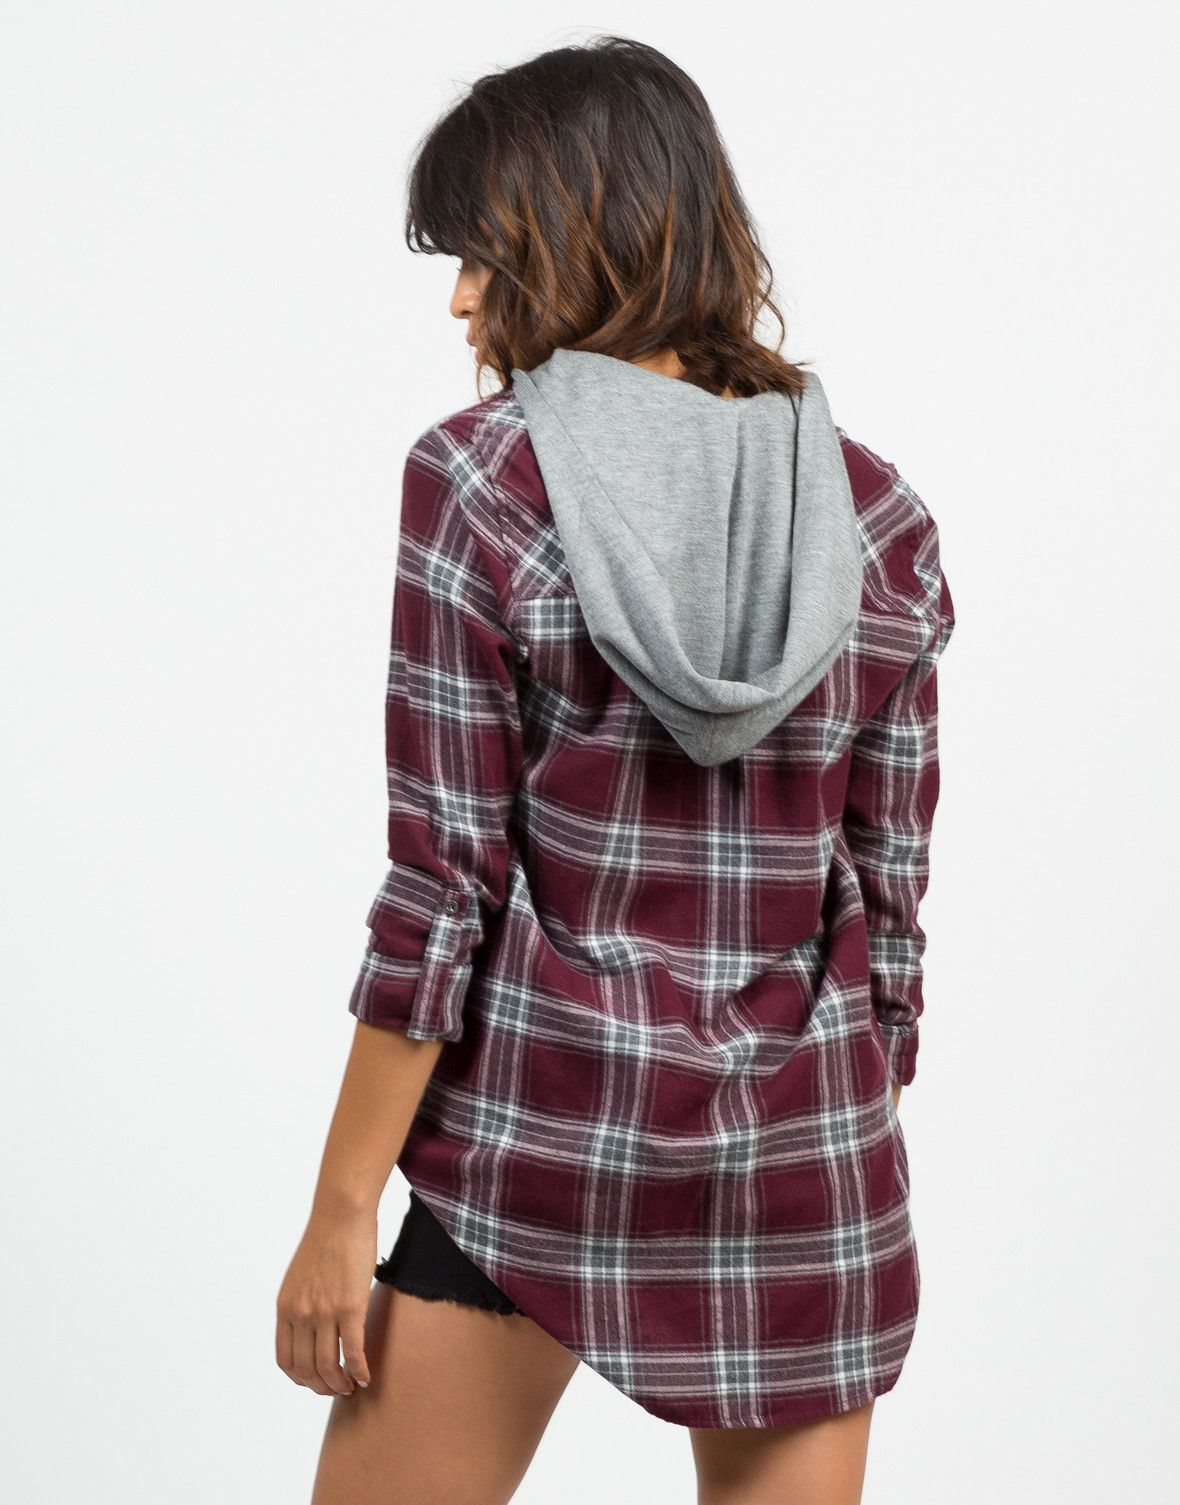 Flannel shirt outfits for women  Front View of Hooded Flannel Shirt  fashion  Pinterest  Hooded